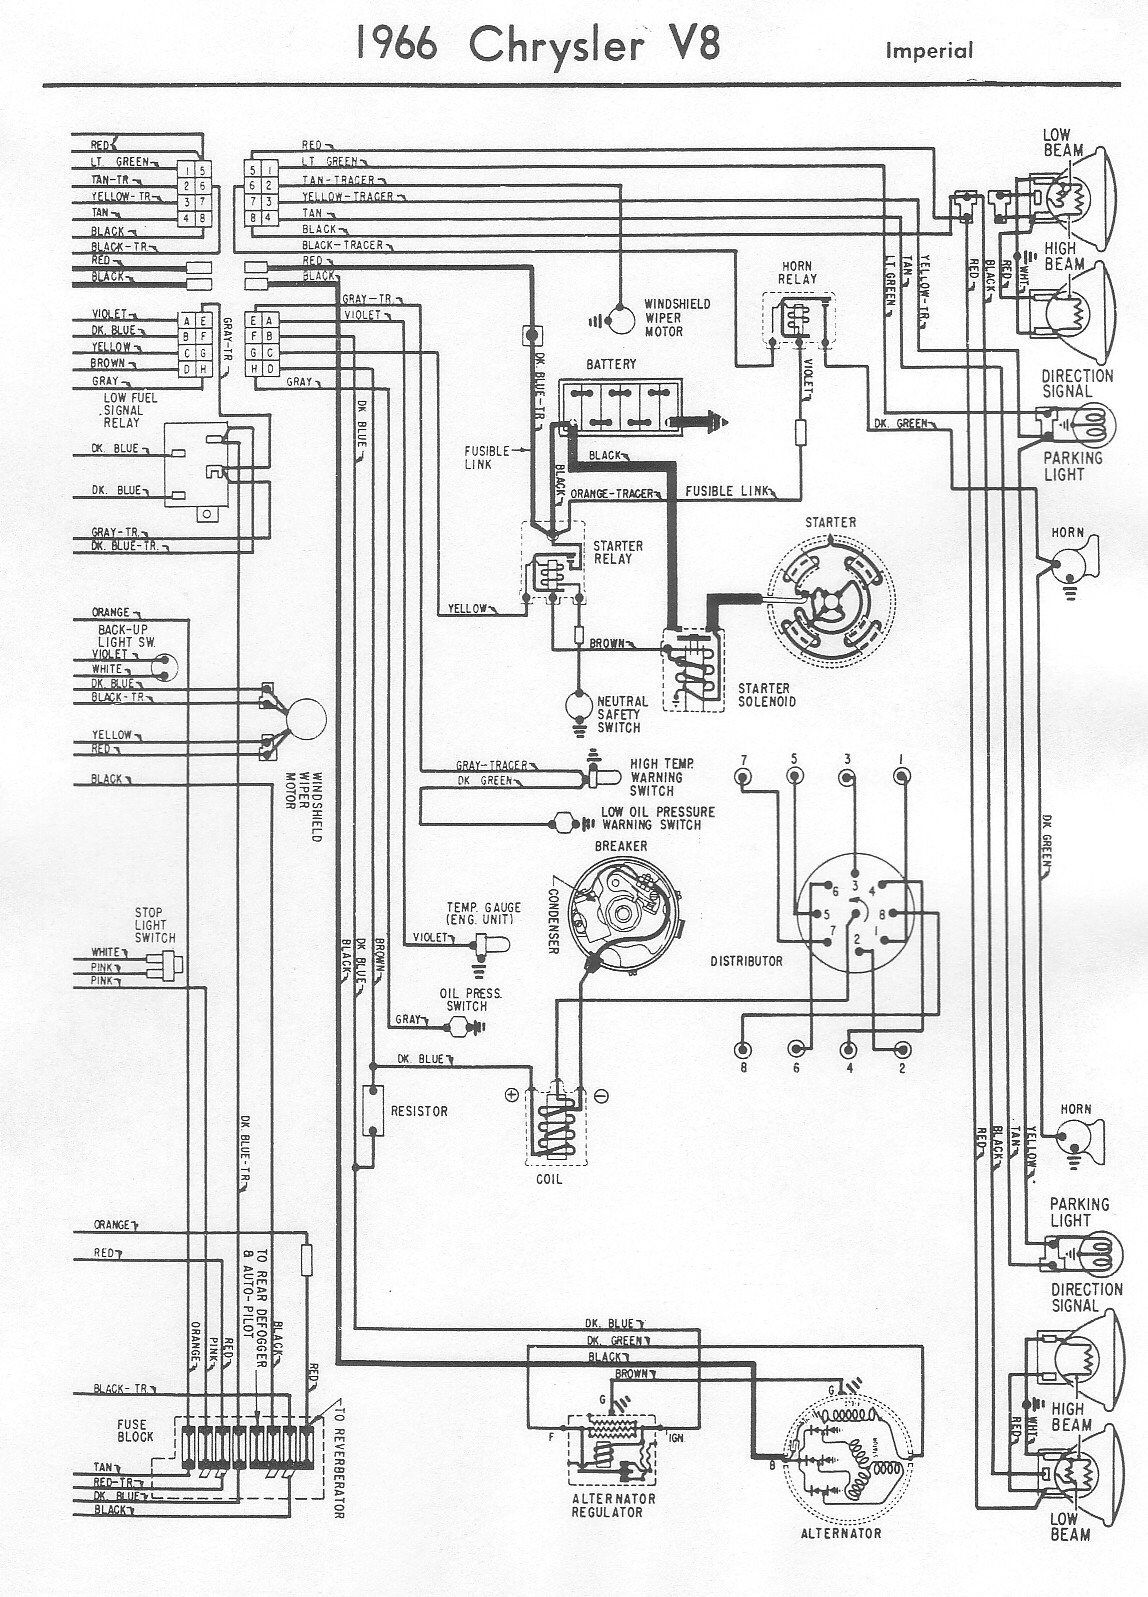 free auto wiring diagram: 1970 plymouth belvedere gtx, road runner, and satellite engine ... 1970 plymouth roadrunner wiring diagram 69 roadrunner wiring diagram horn #13